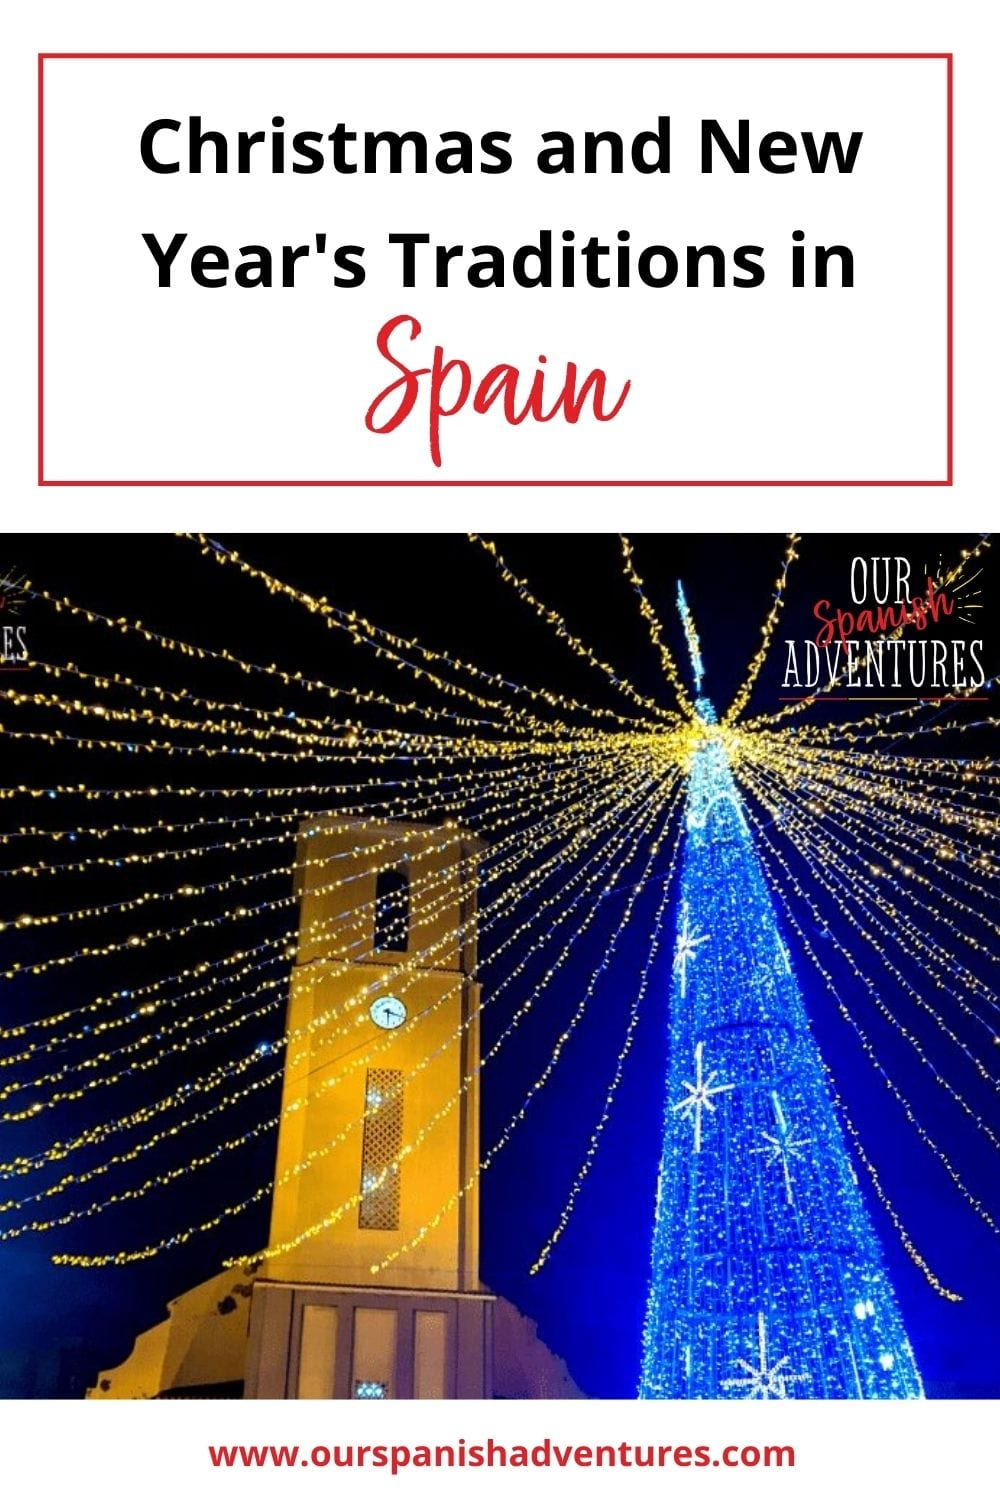 Christmas and New Year's Eve traditions in Spain | Our Spanish Adventures